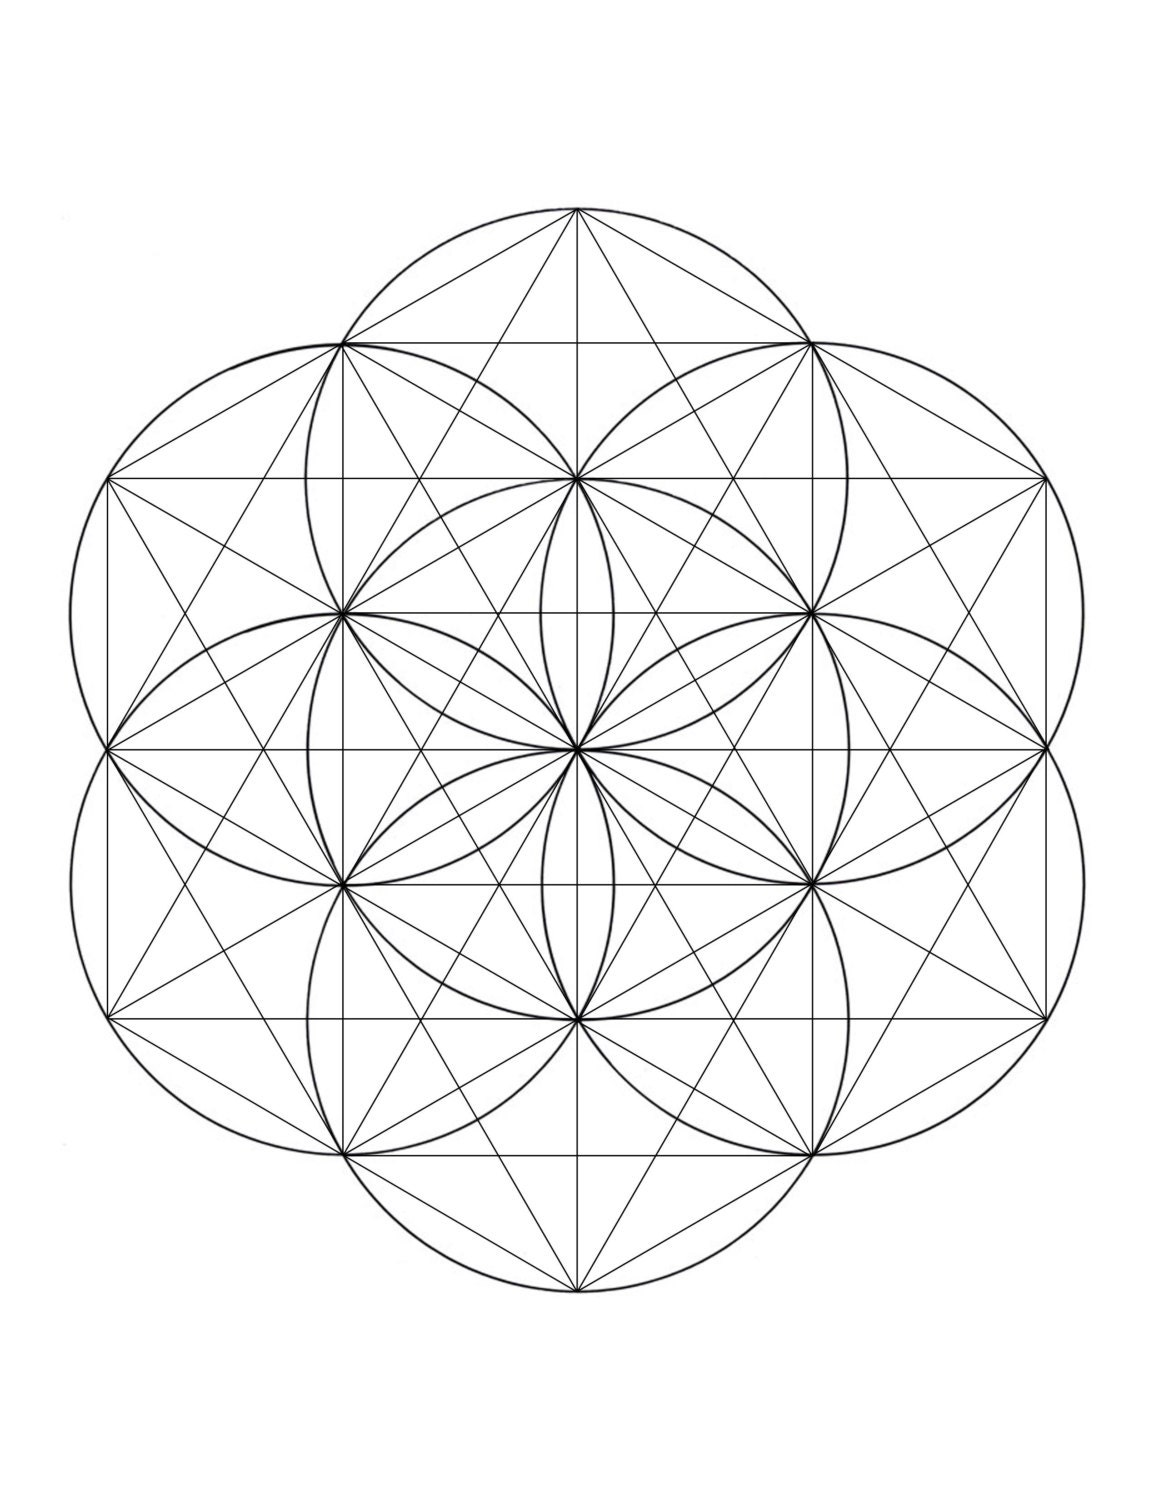 Légend image with printable crystal grid